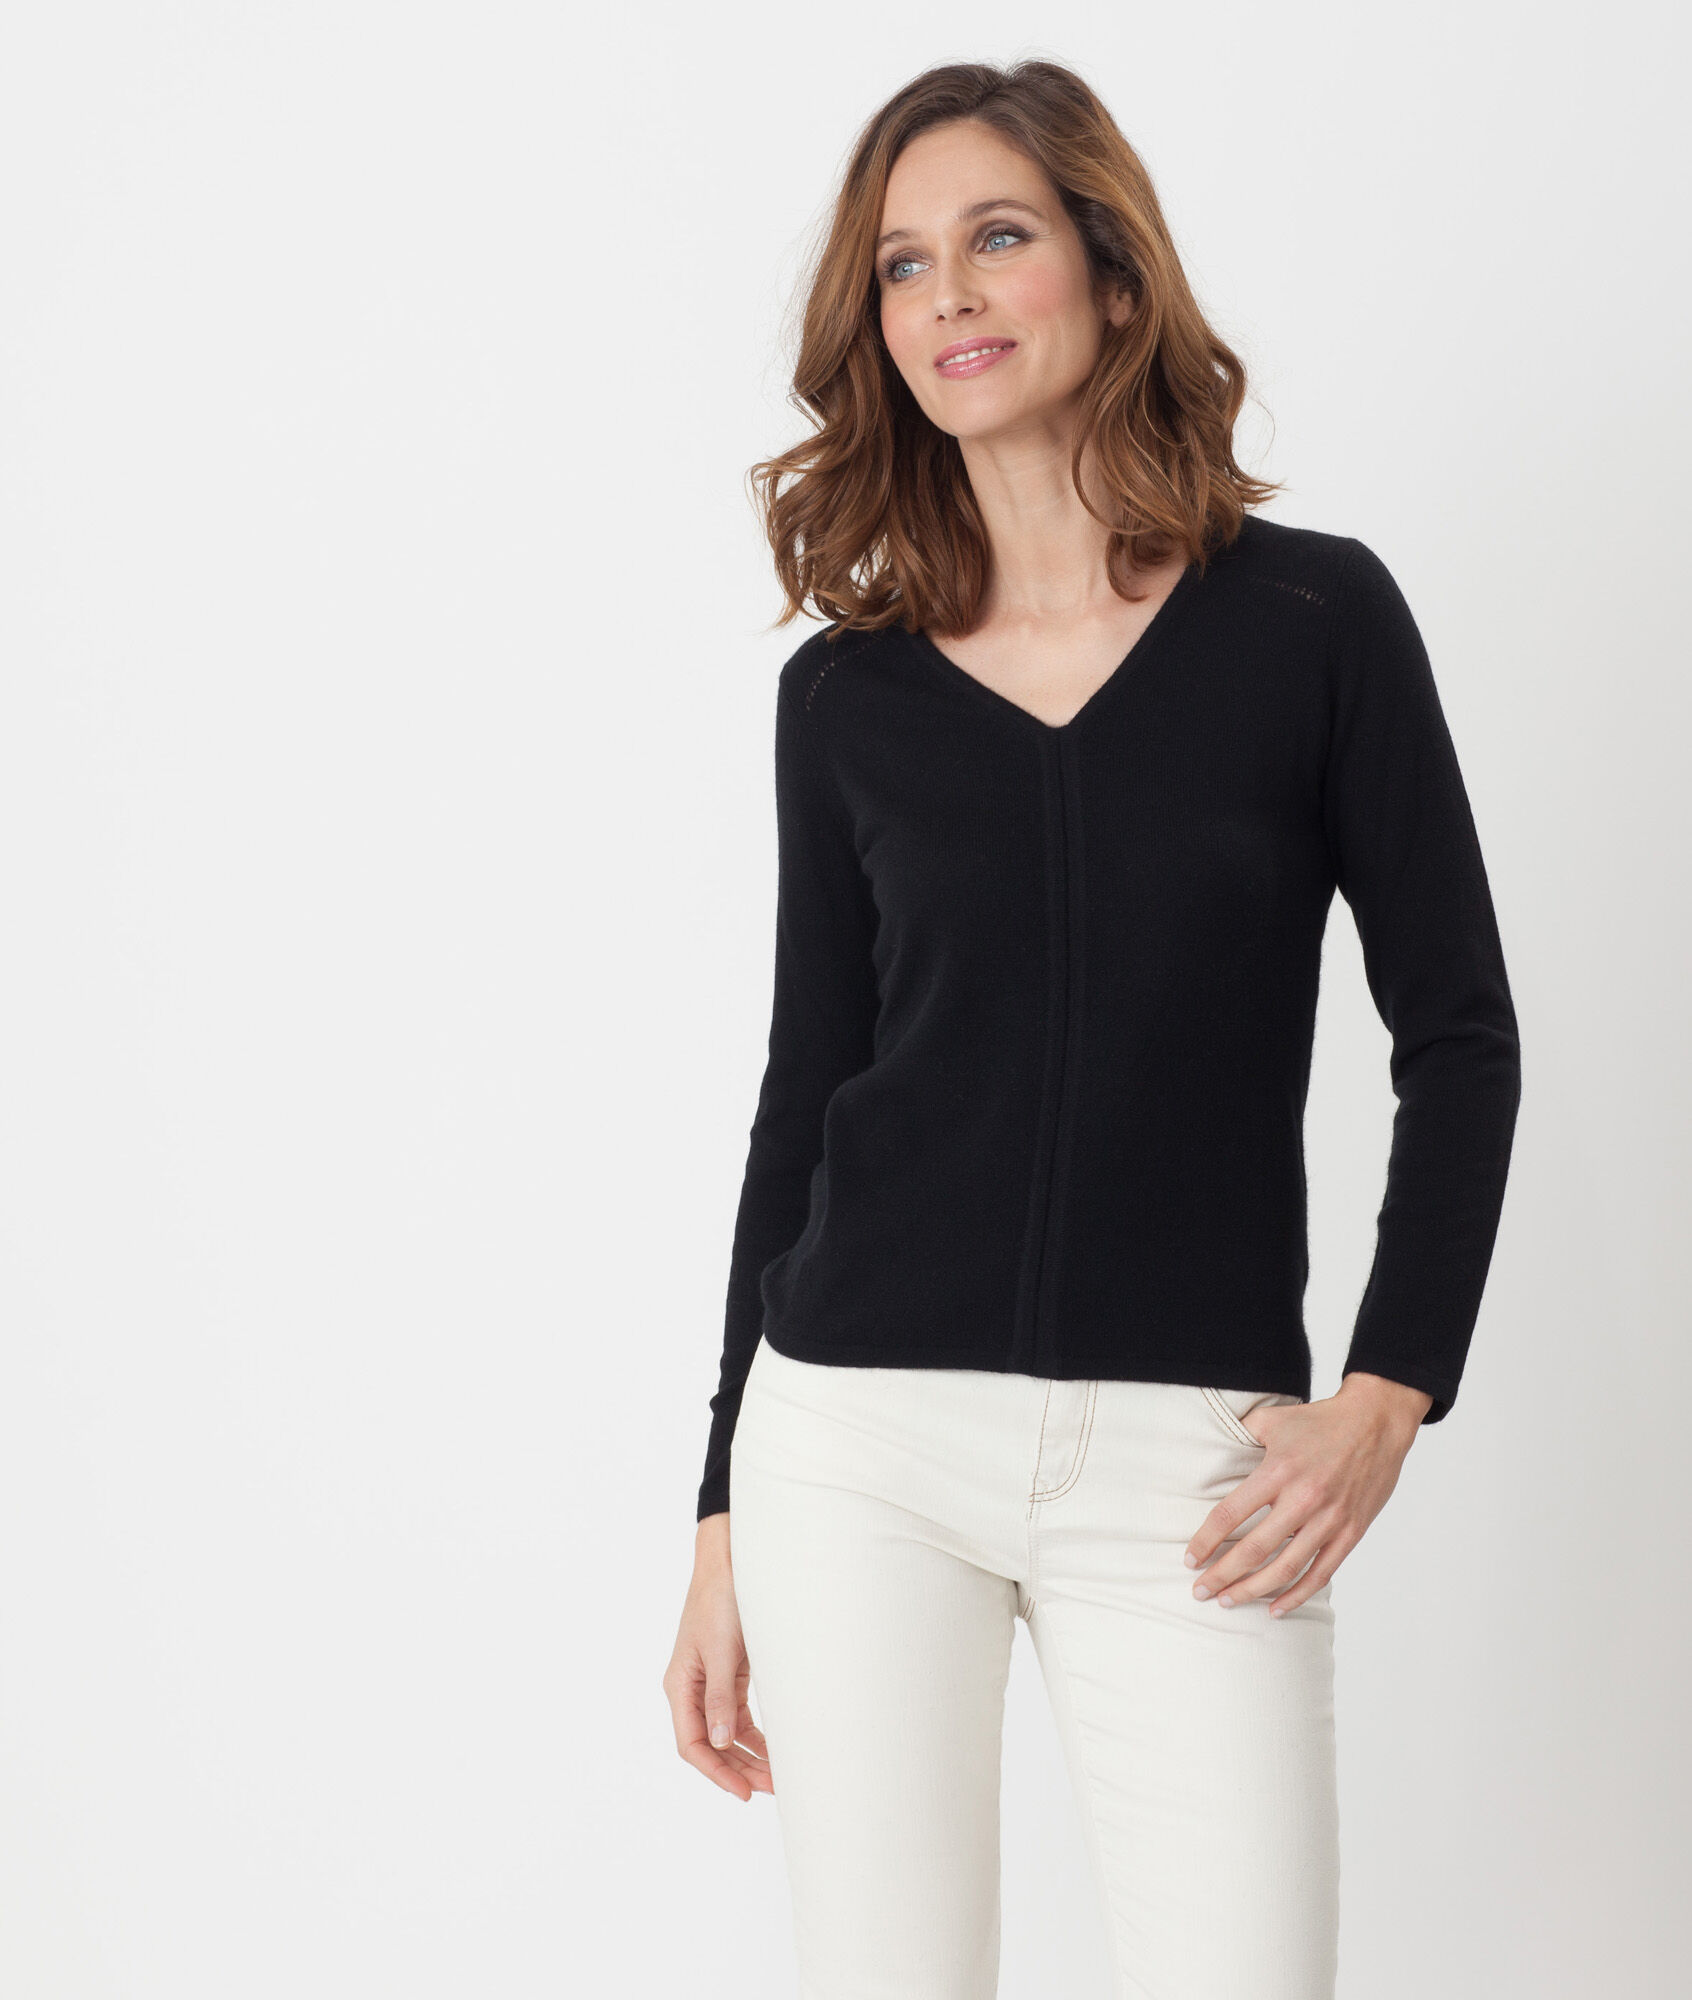 Heart black cashmere sweater - 123